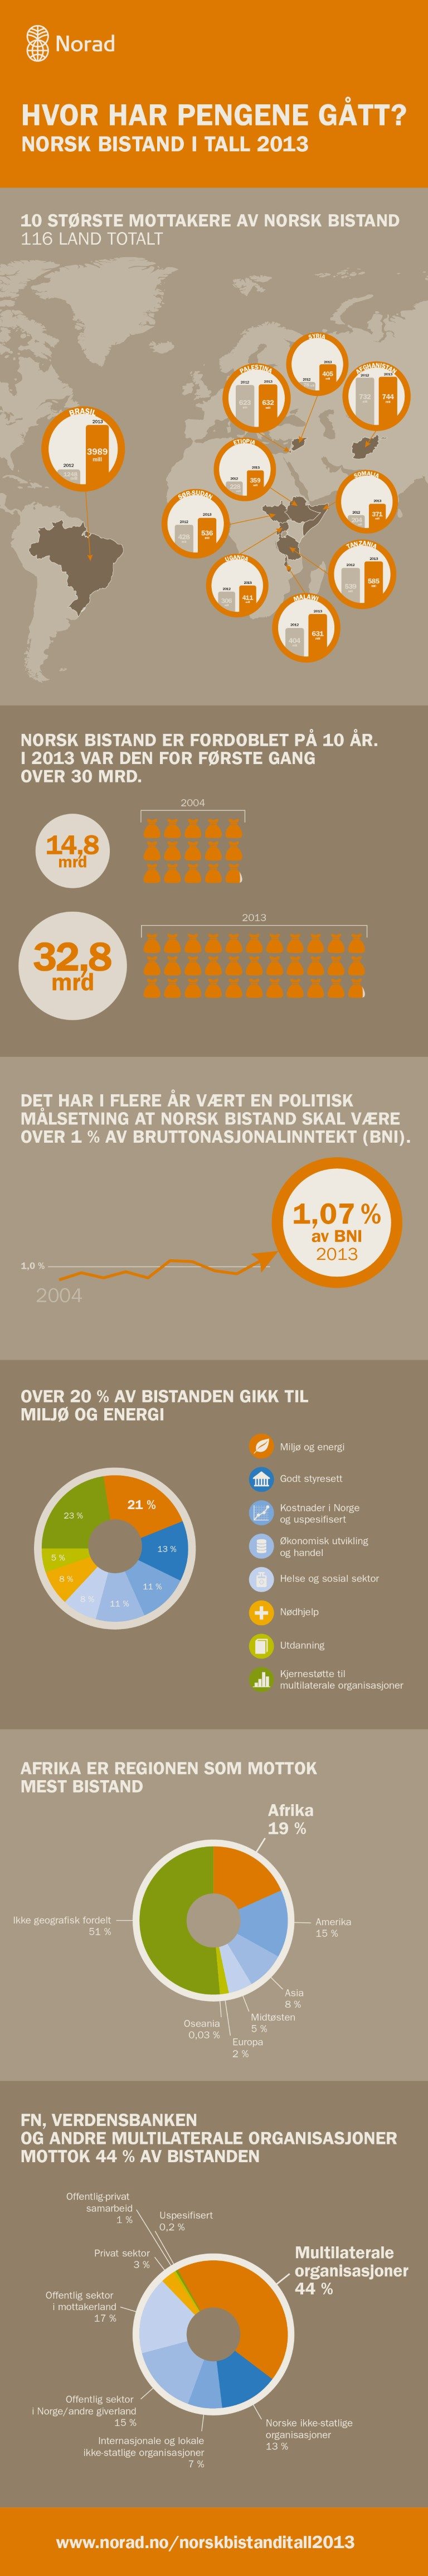 Norsk bistand i tall 2013